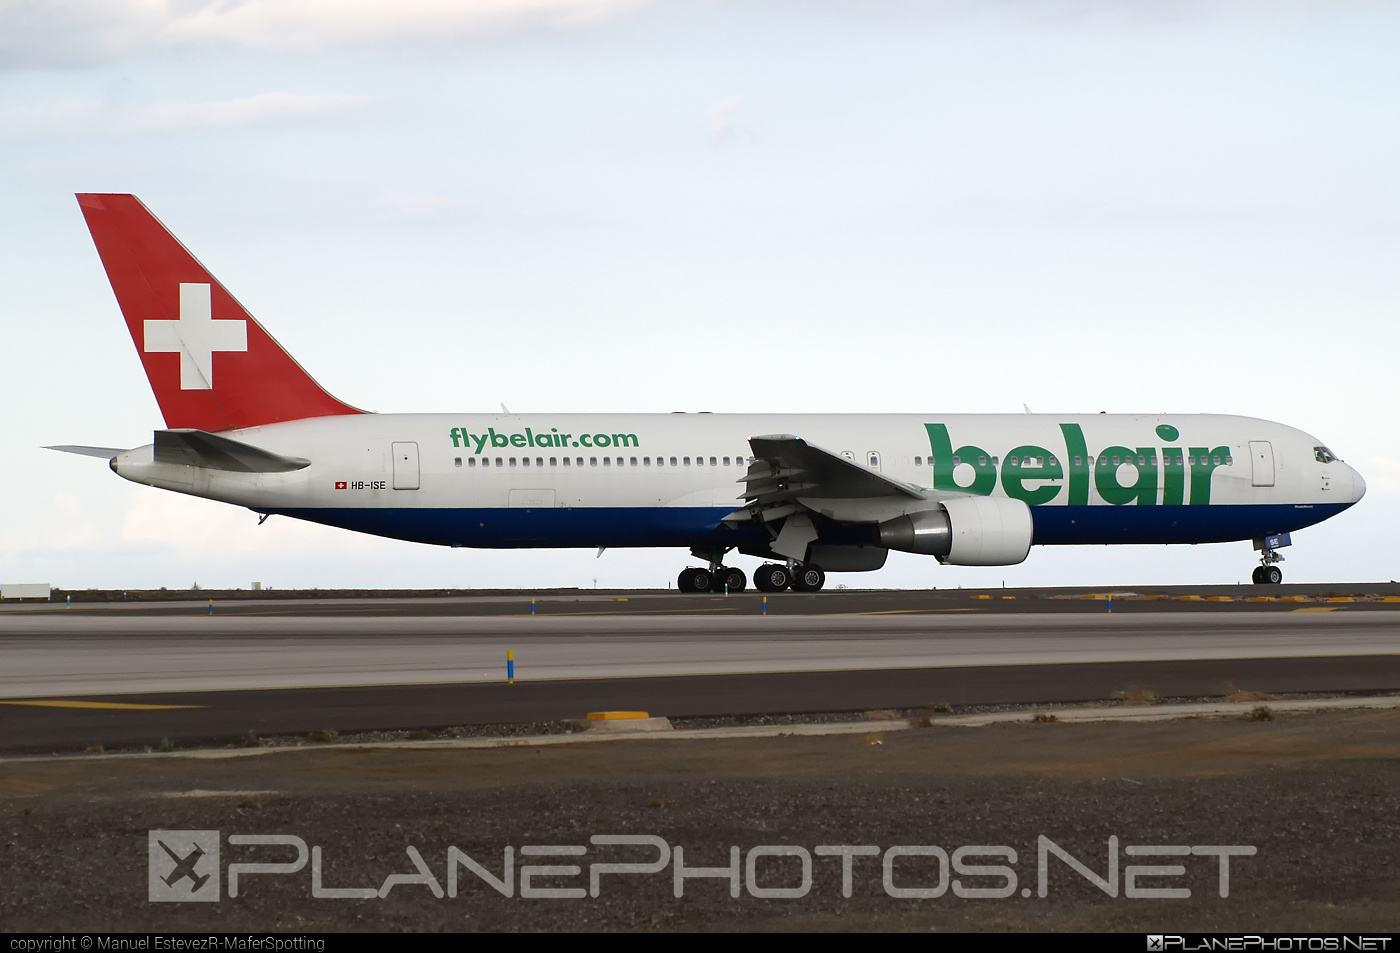 Boeing 767-300ER - HB-ISE operated by Belair Airlines #b767 #b767er #boeing #boeing767